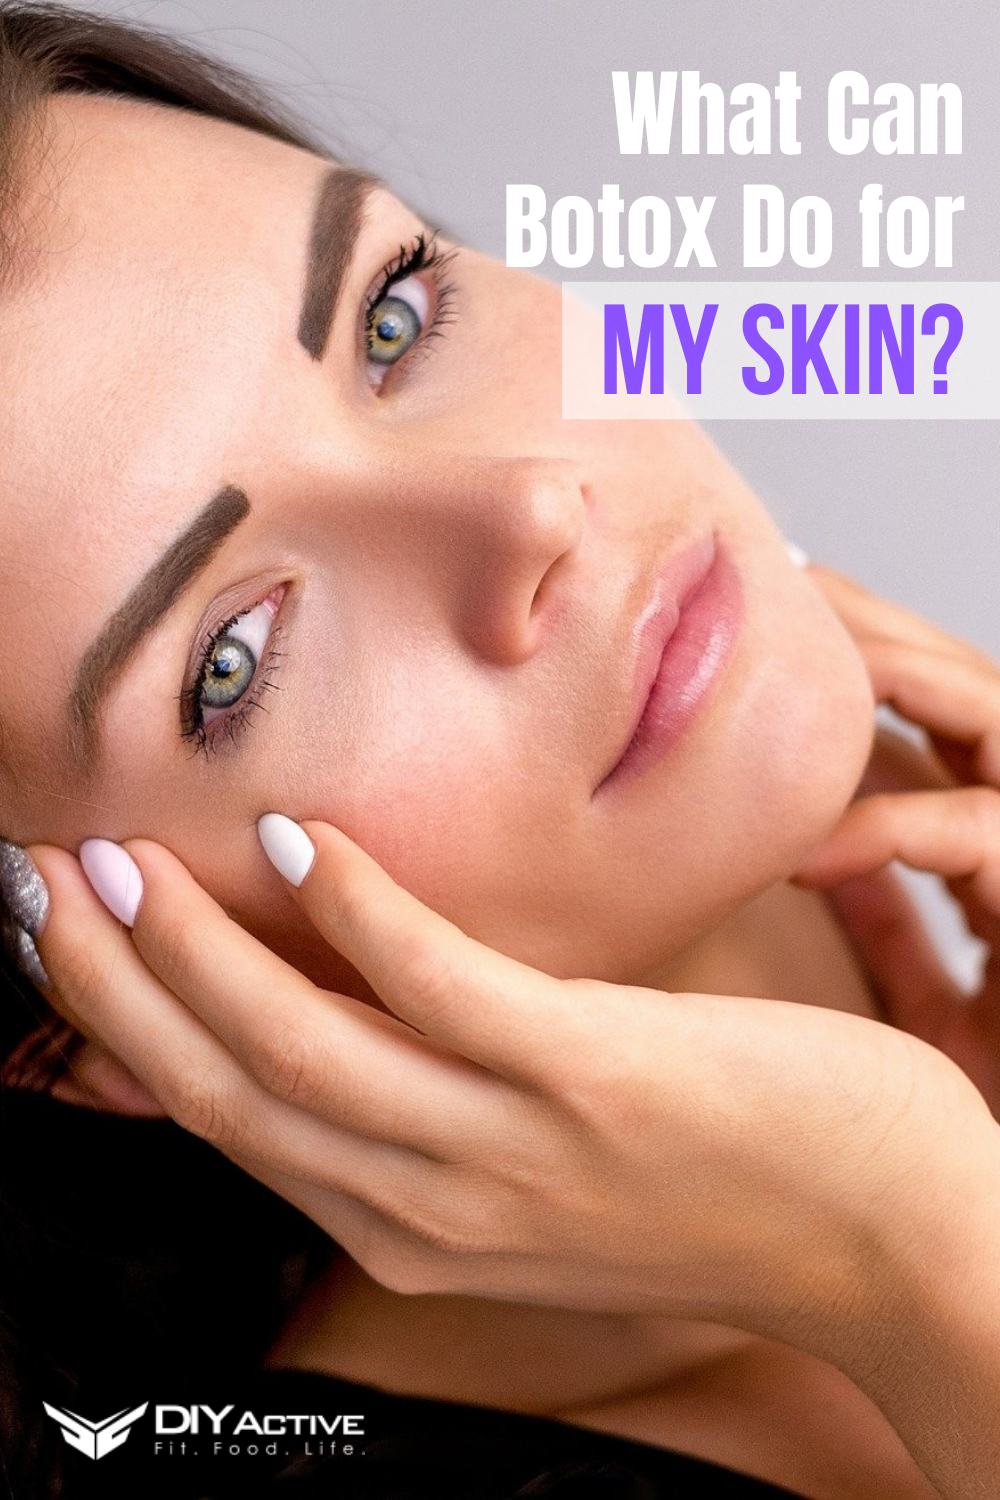 What Can Botox Do for My Skin?